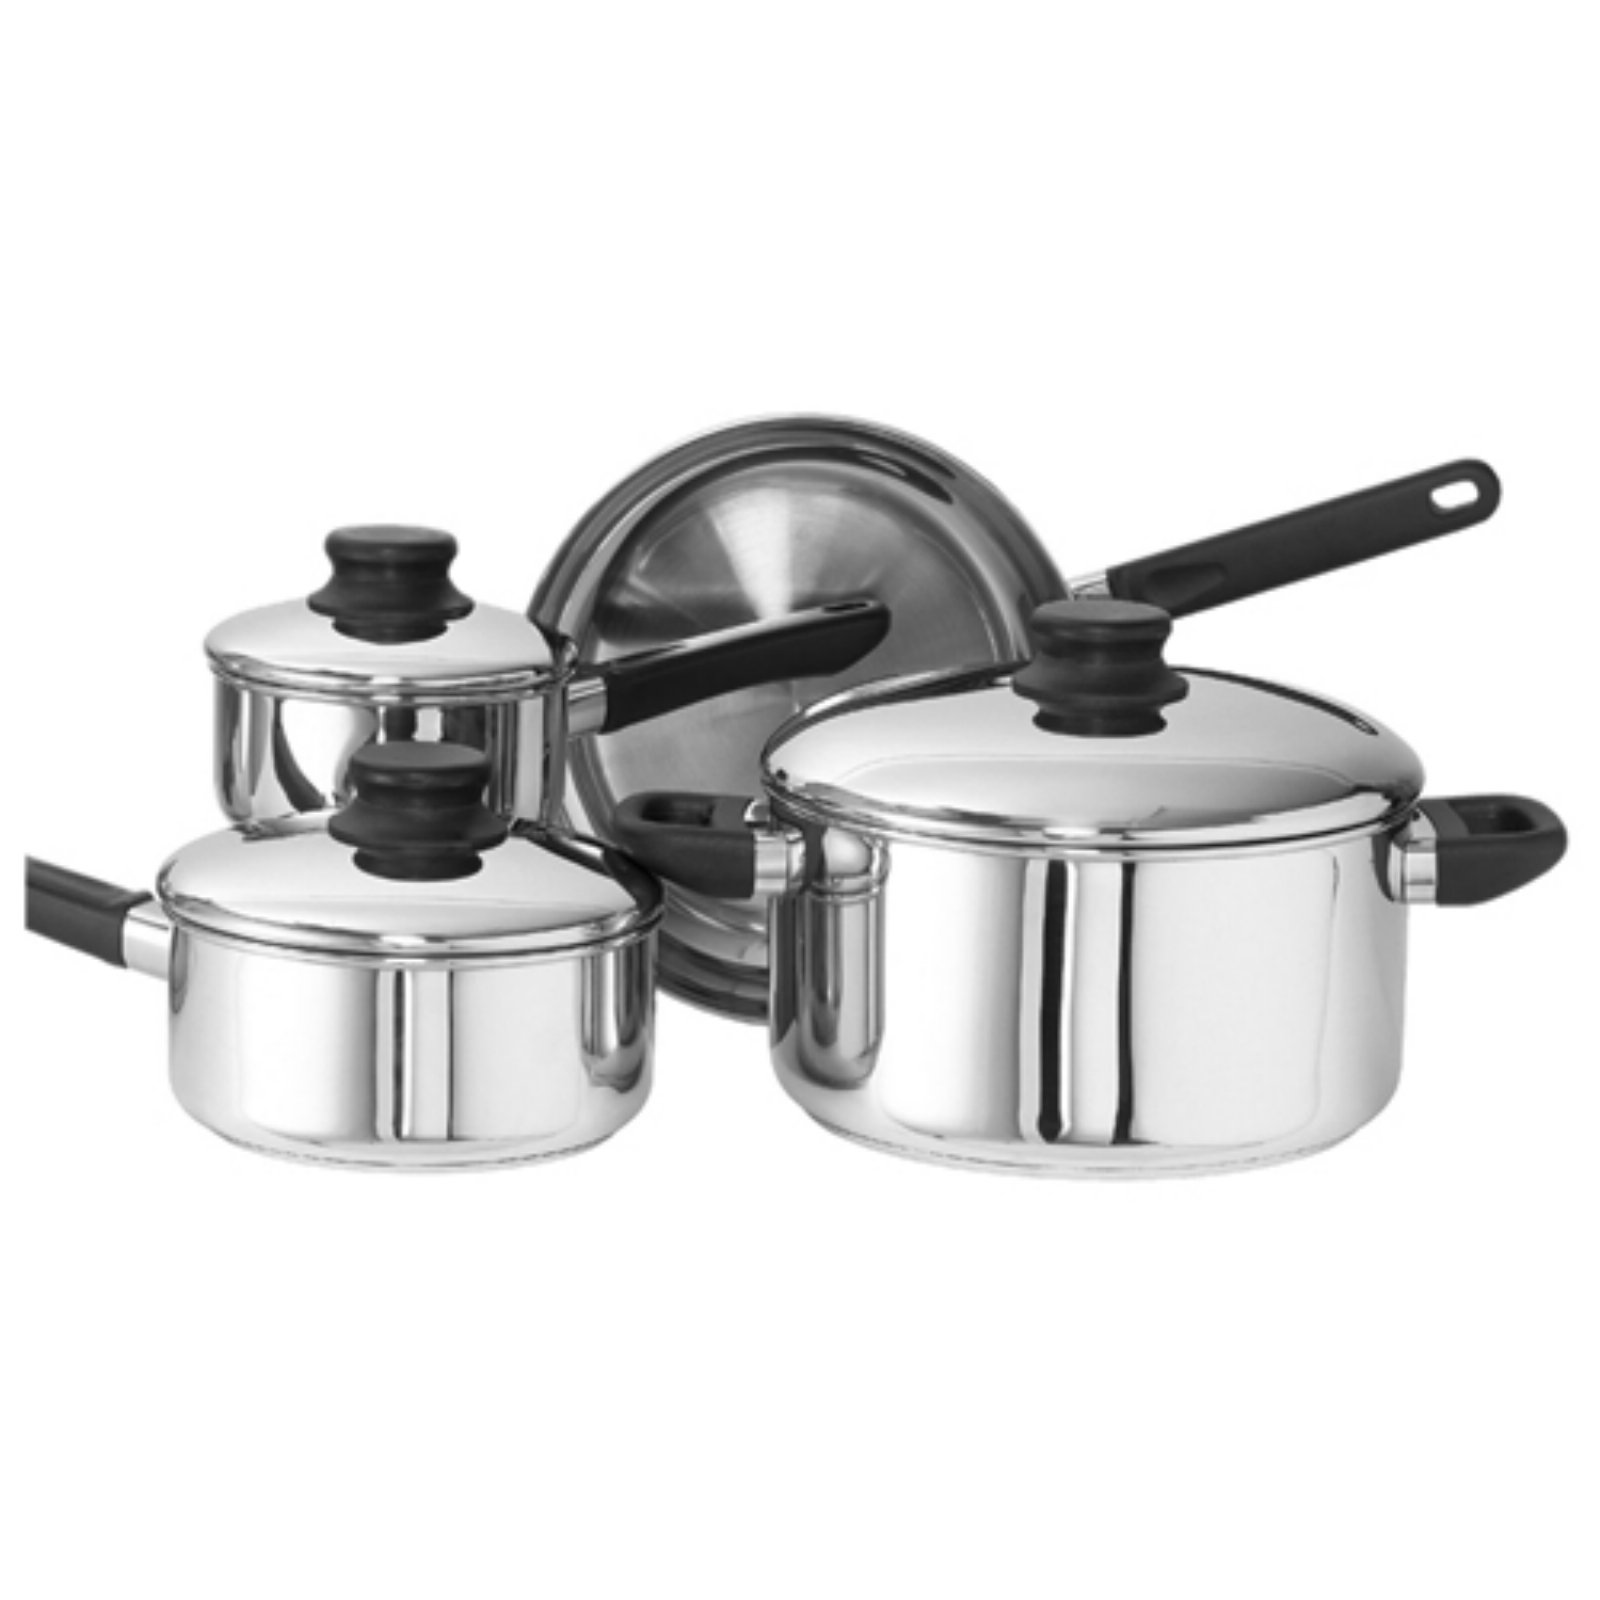 Kinetic Go Green Kitchen Basics Stainless Steel Cookware 7-Piece Set with Lid